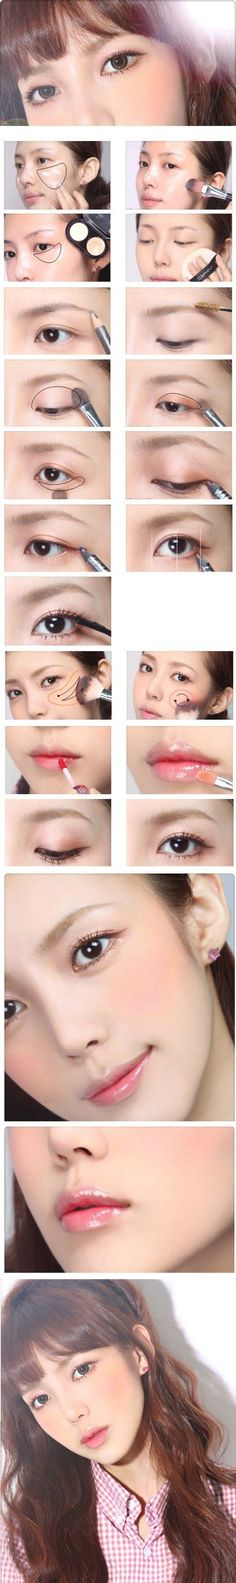 #simple #asian #make-up   nice and cleanly done  CLICK THE PIC and Learn how you can EARN MONEY while still having fun on Pinterest